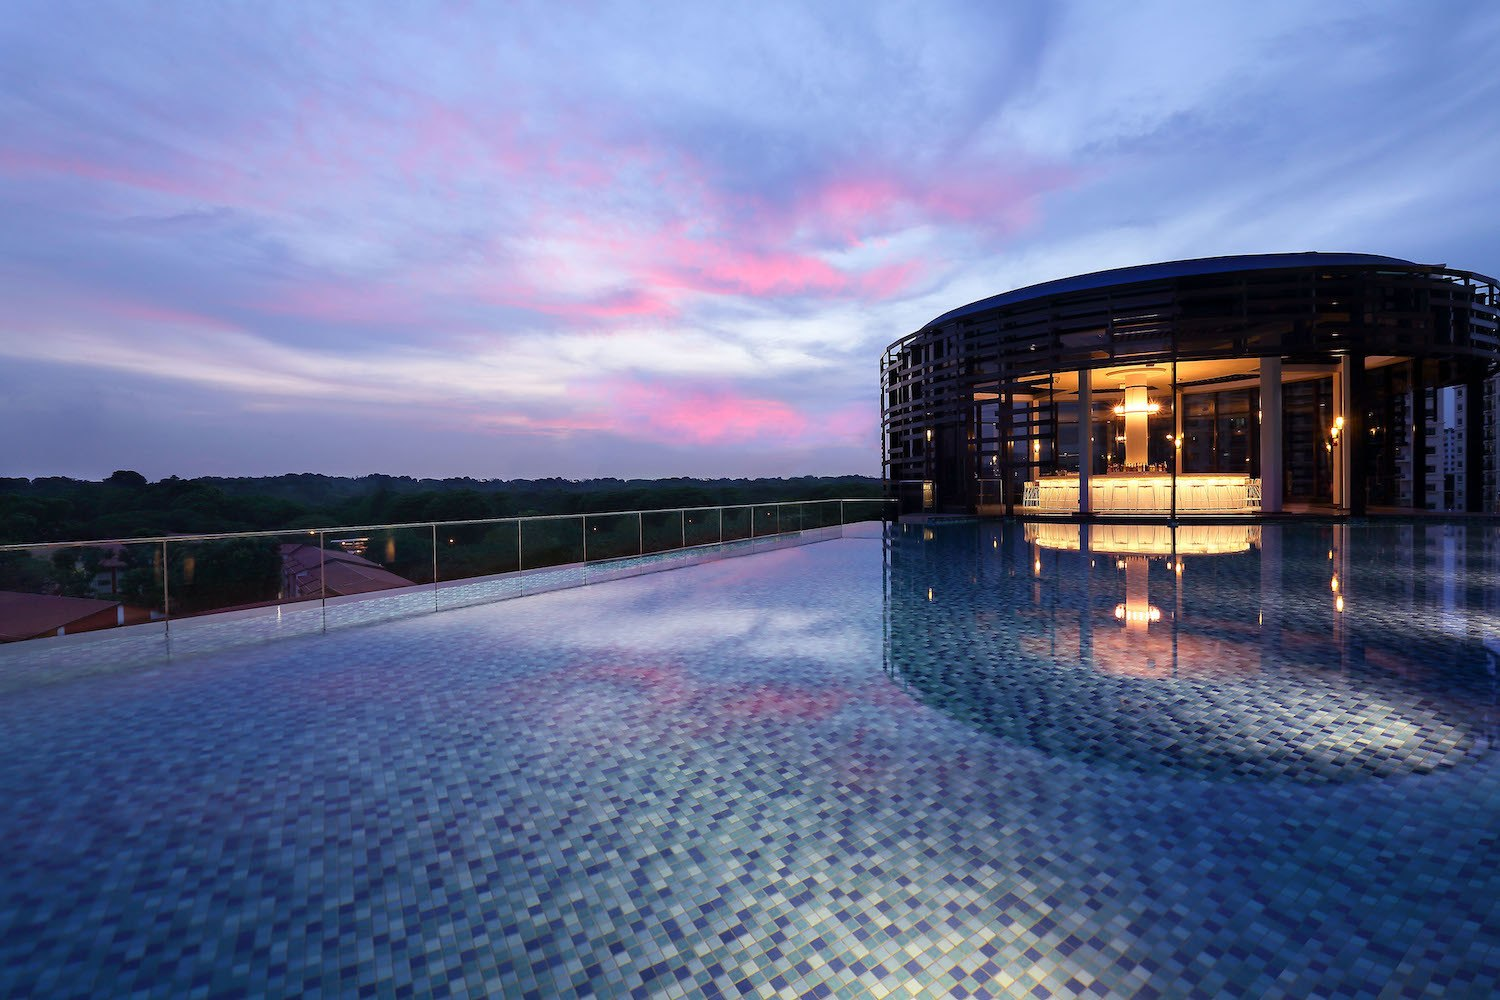 Park Hotel Alexandra Infinity Pool in Singapore